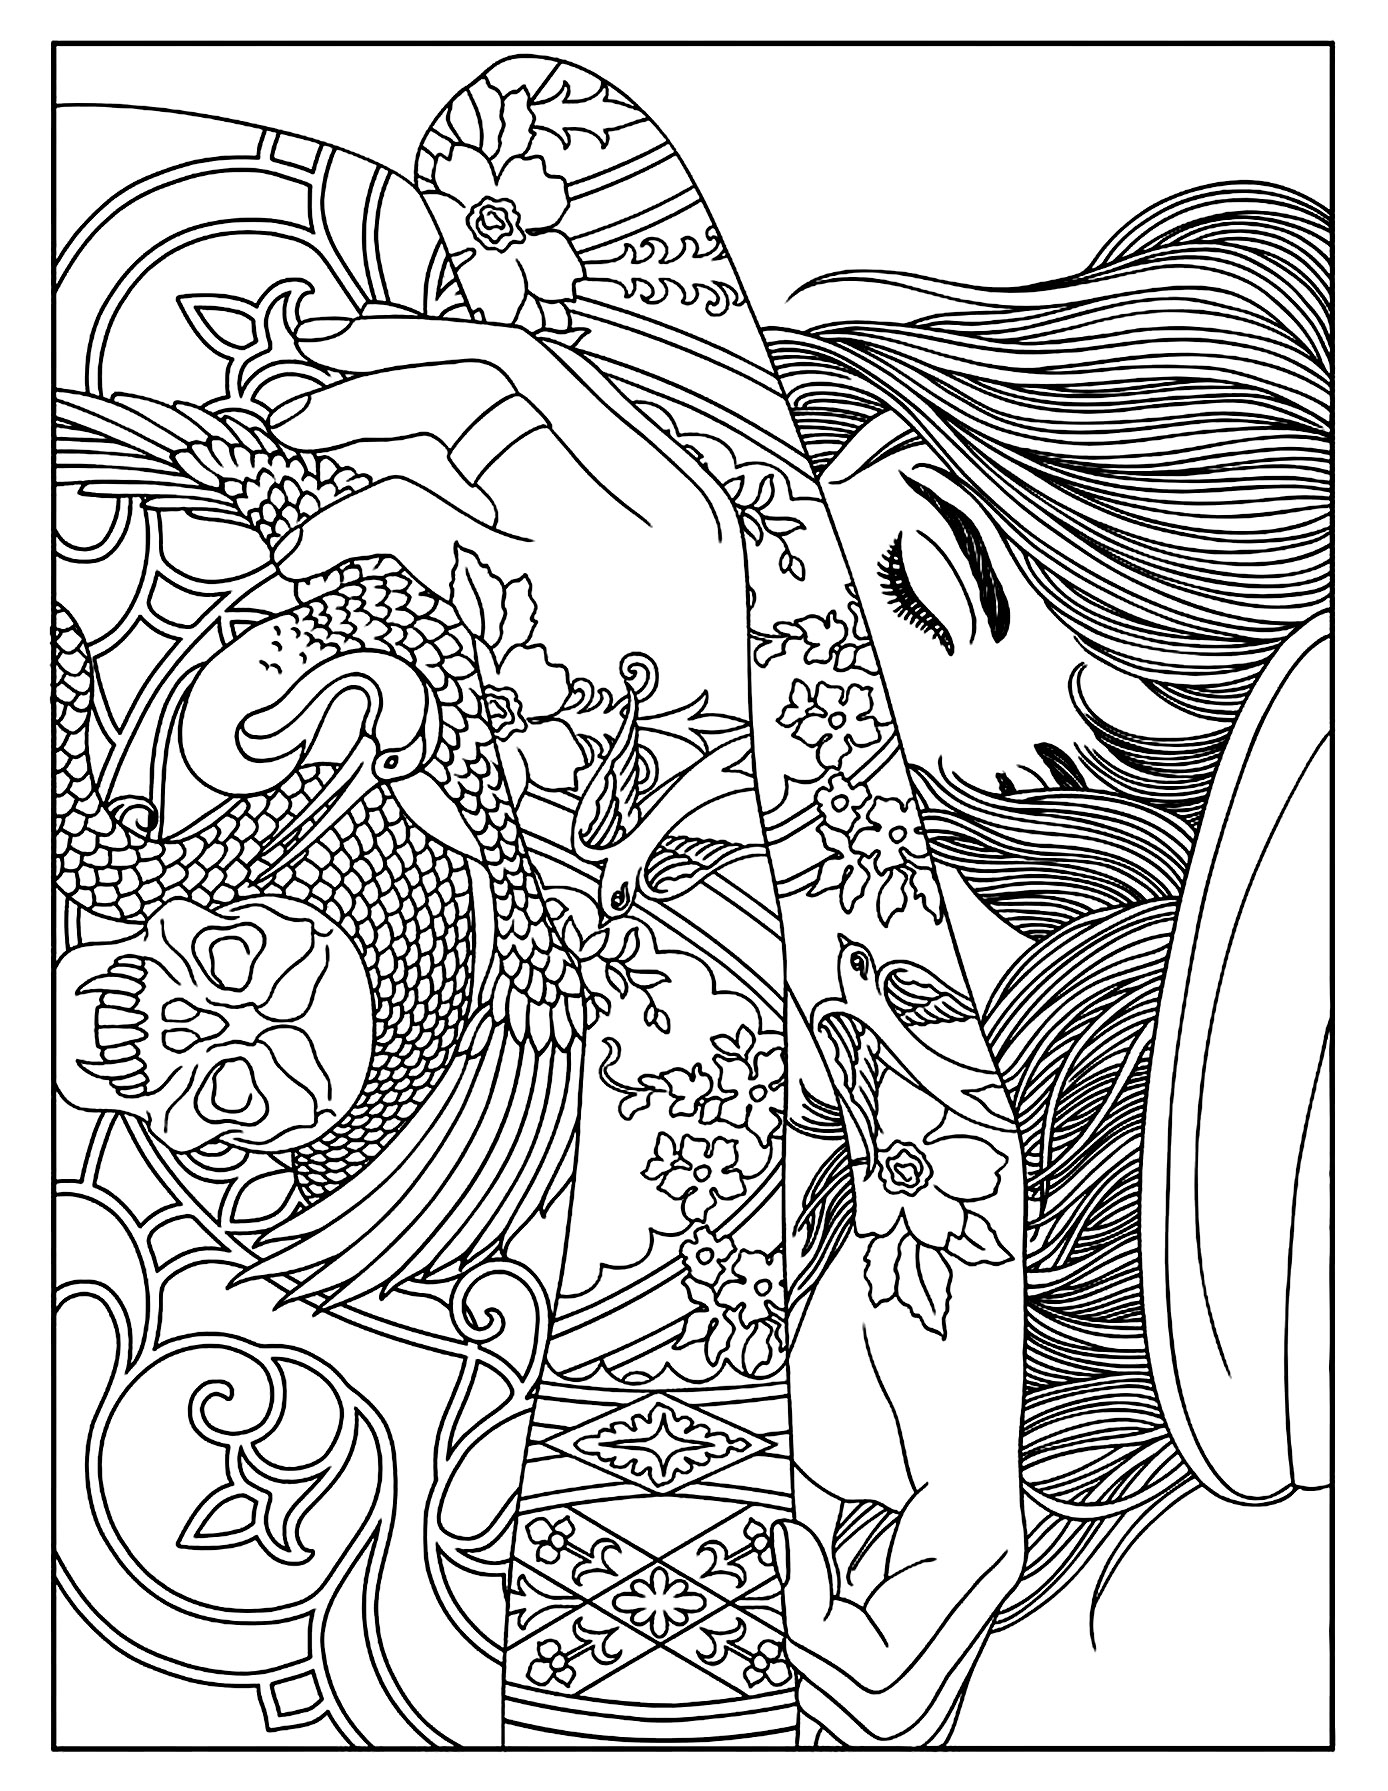 coloring page woman tattoos sleeping beauty - Coloring Page Woman